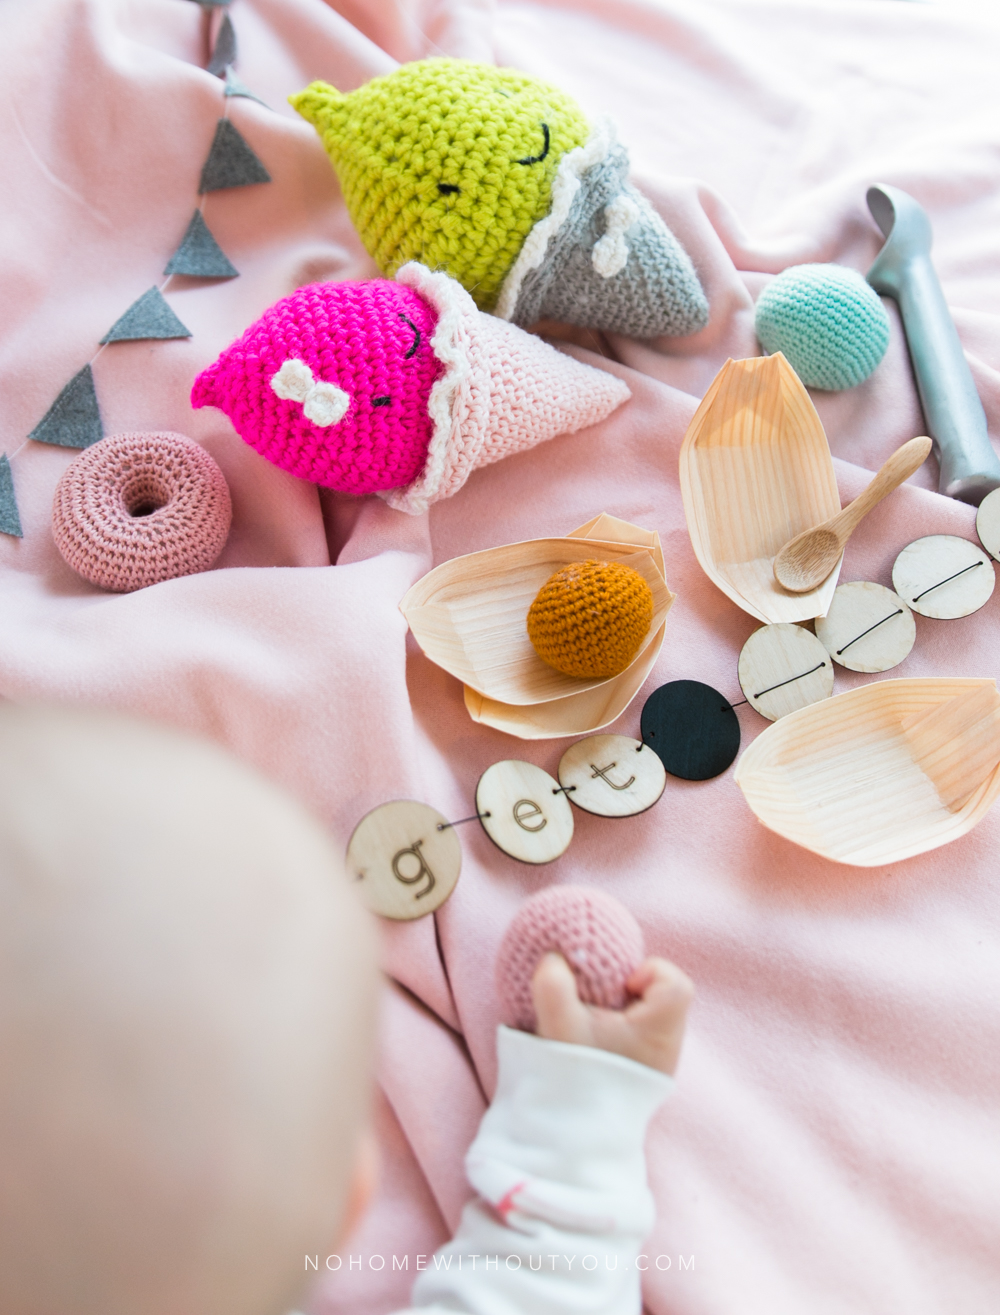 Ice Cream Party - Free amigurumi crochet pattern - No Home Without You blog (7 of 10)